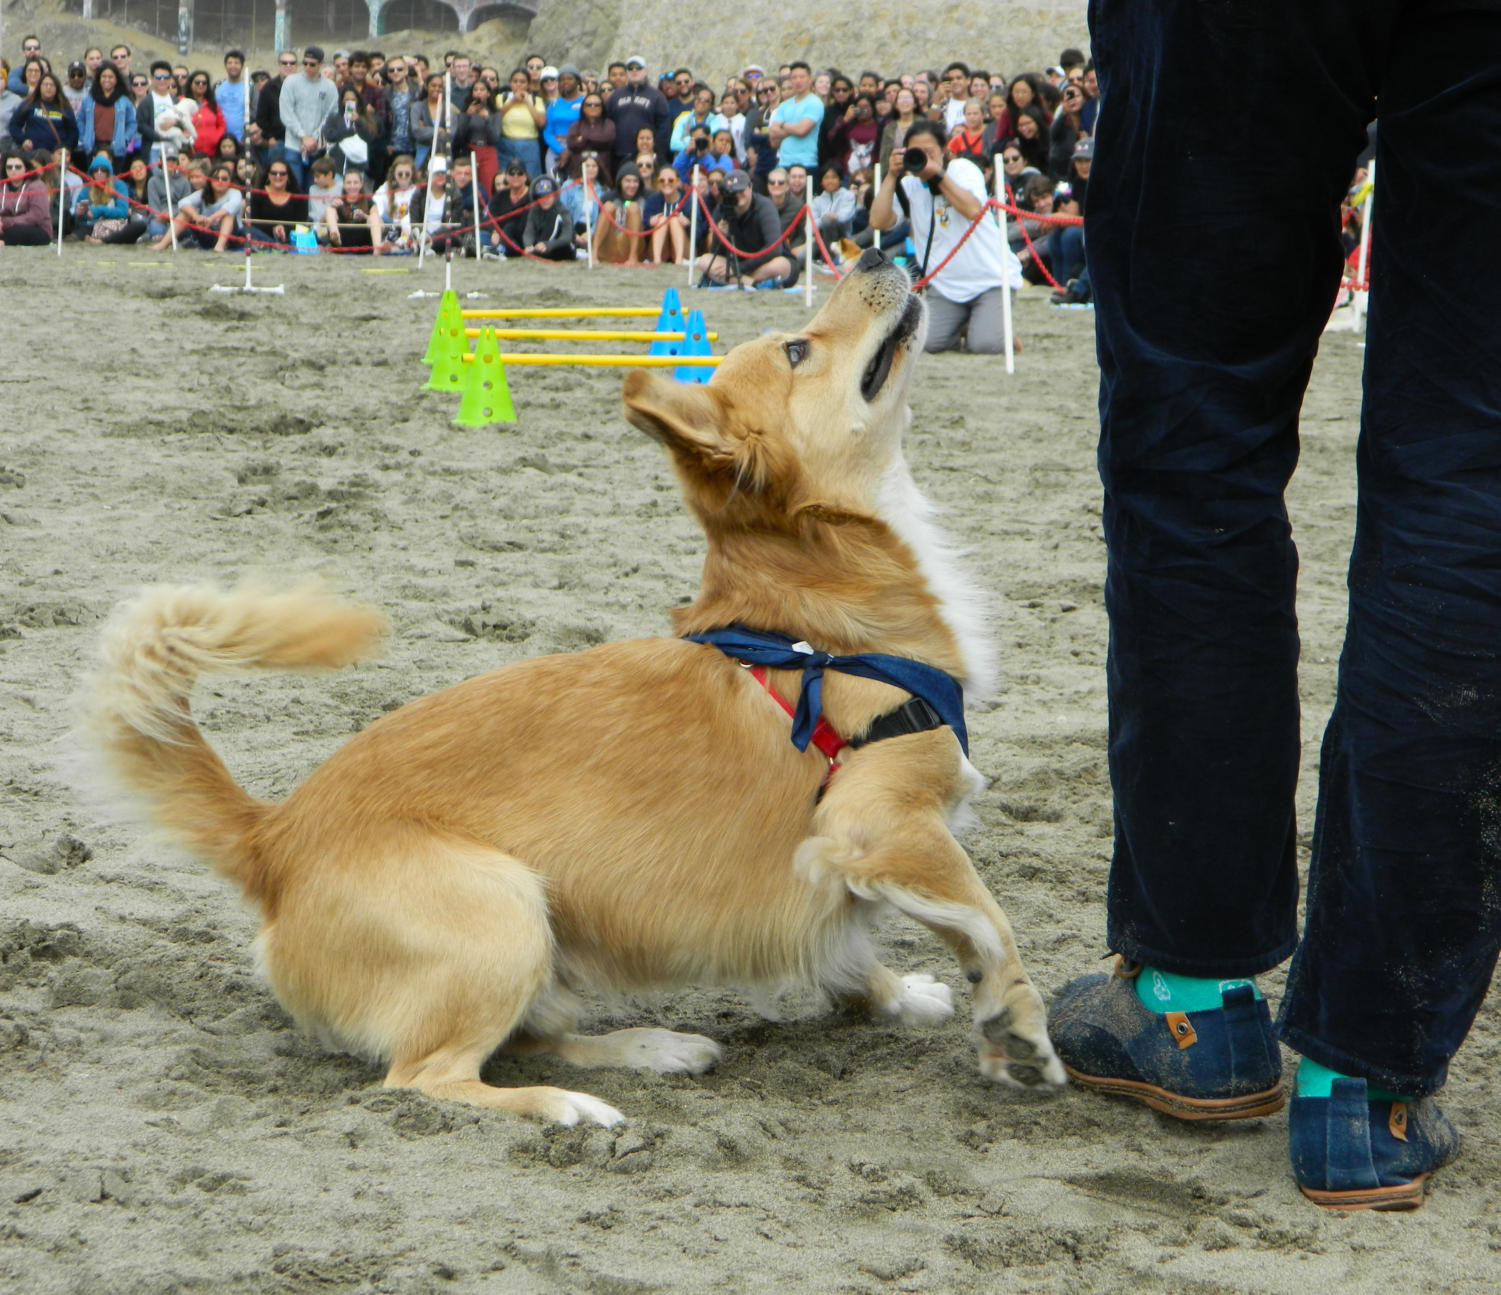 Ketchup%2C+the+champion+of+Corgi+Ninja+Warrior%2C+looks+up+to+his+owner+in+excitement+before+starting+the+corgi-sized+obstacle+course.